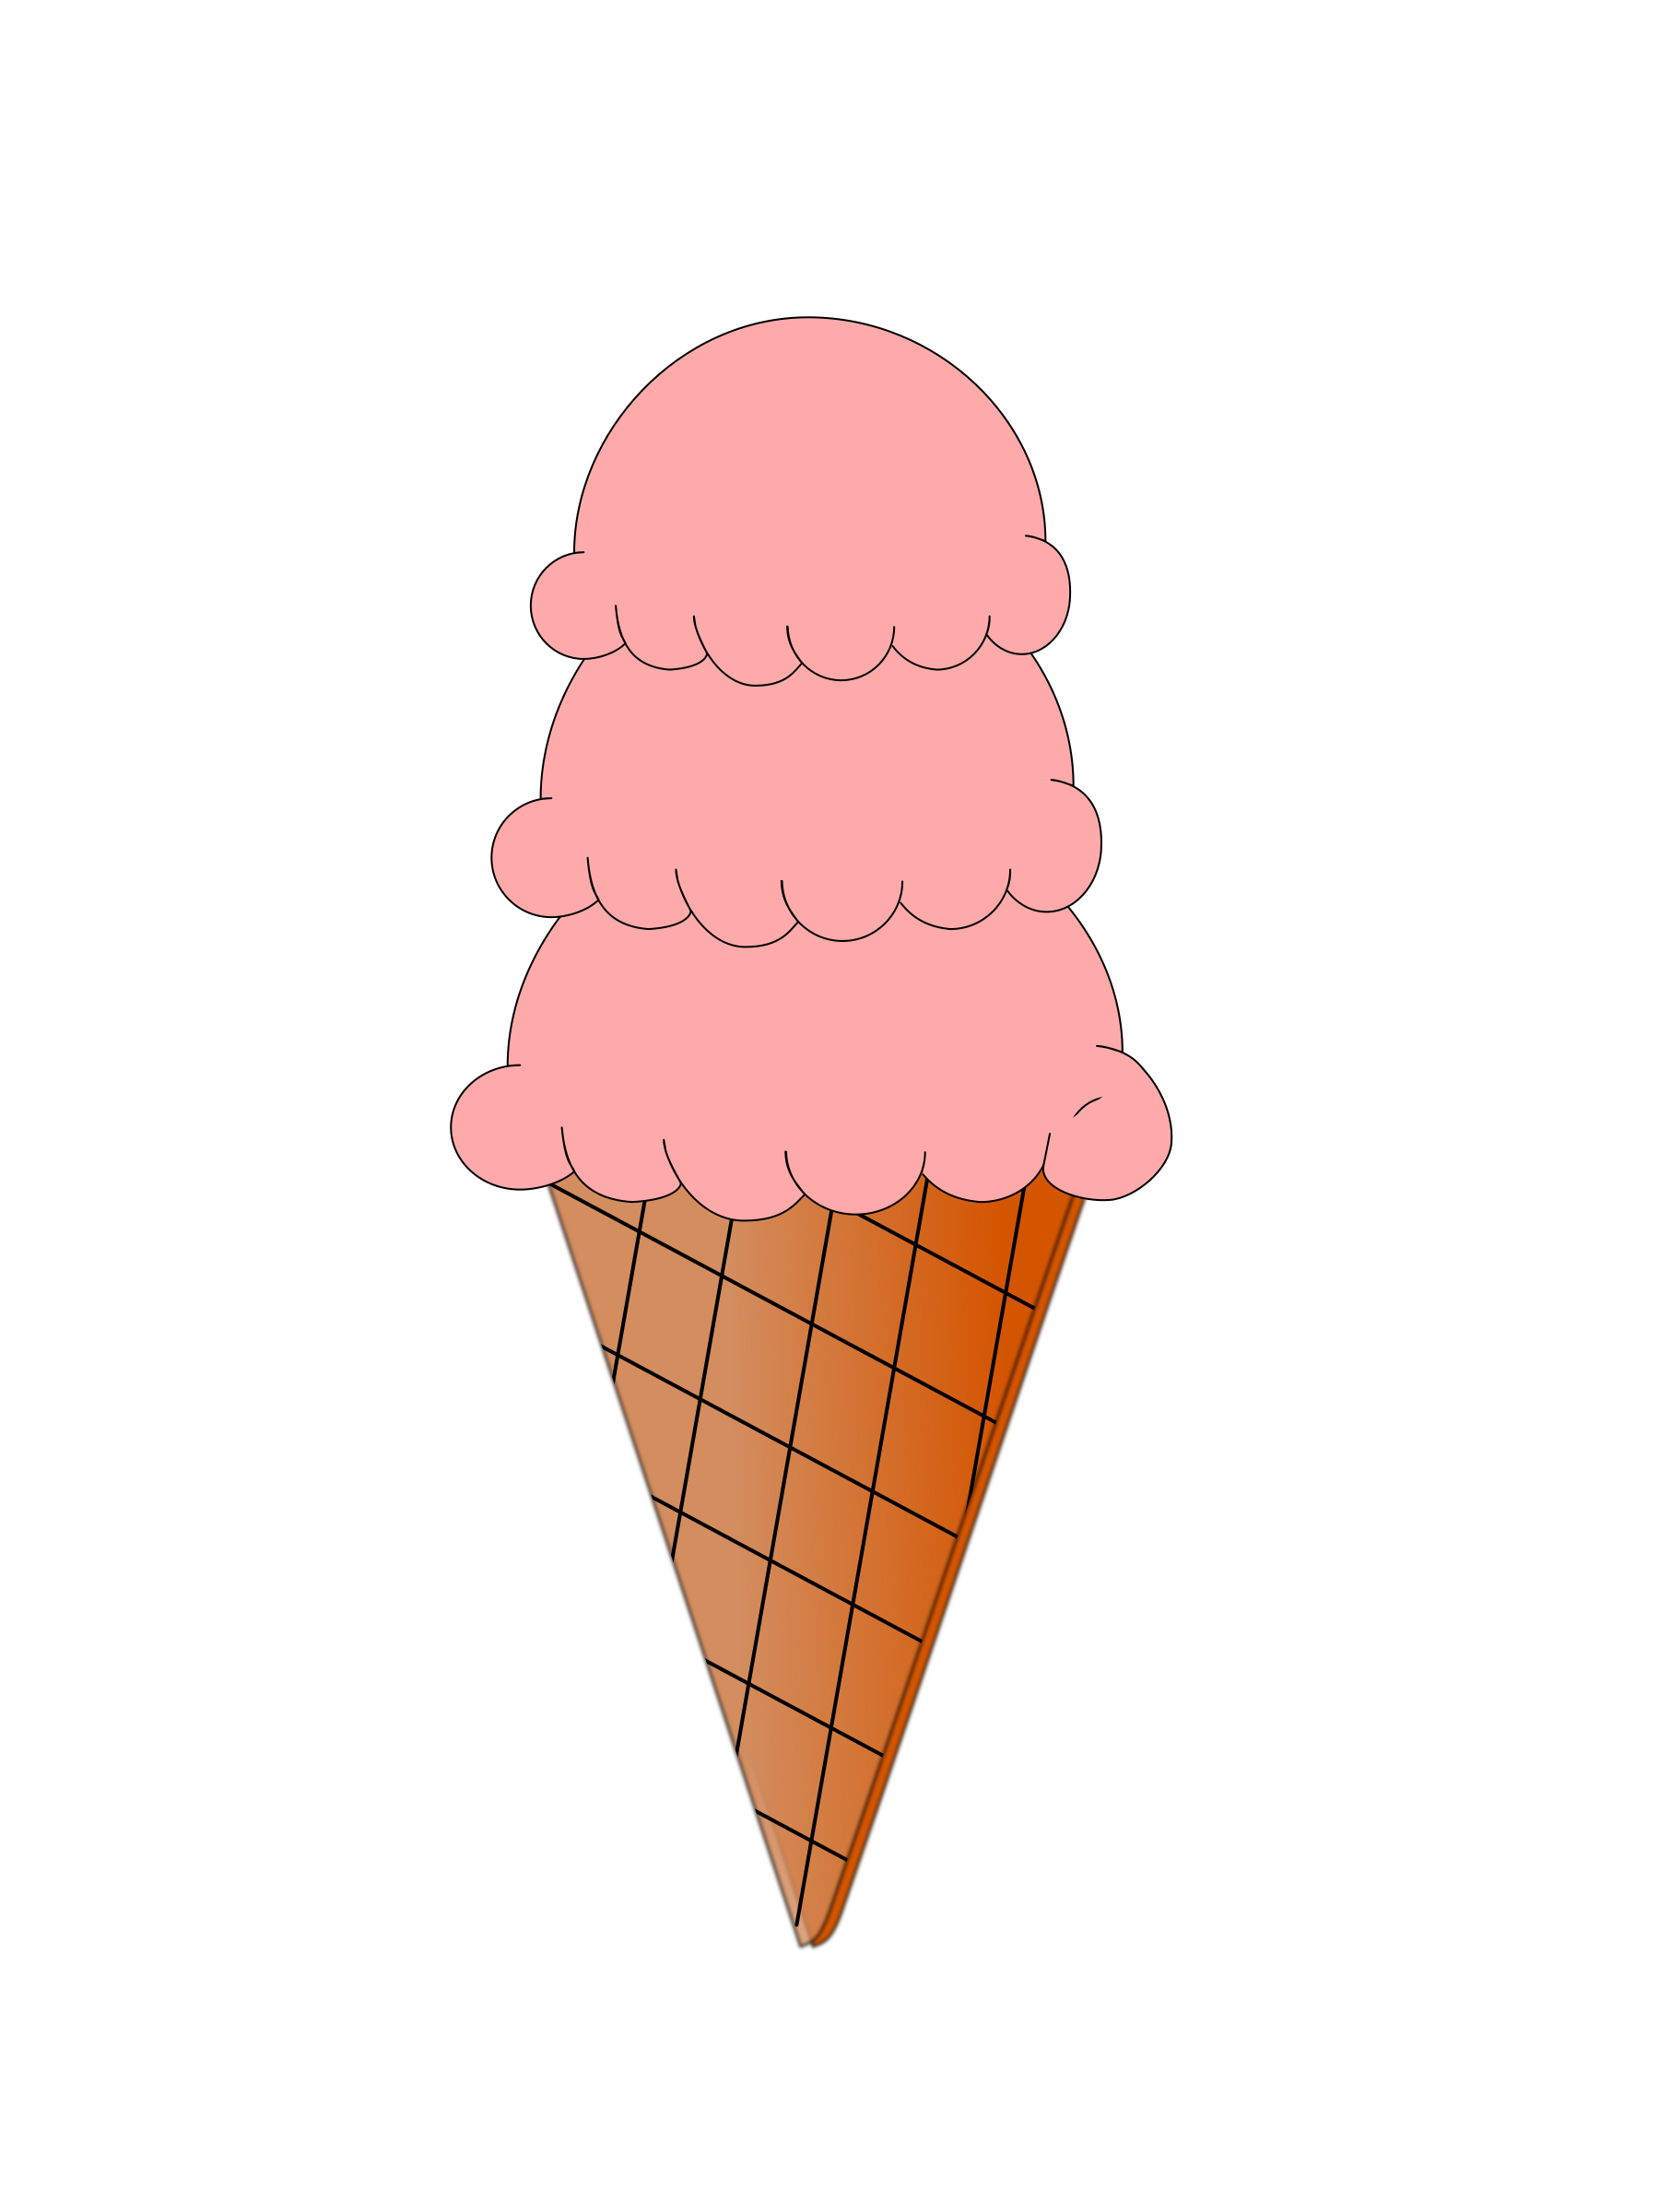 Ice Cream and Sugar Cone Animation by aukipa